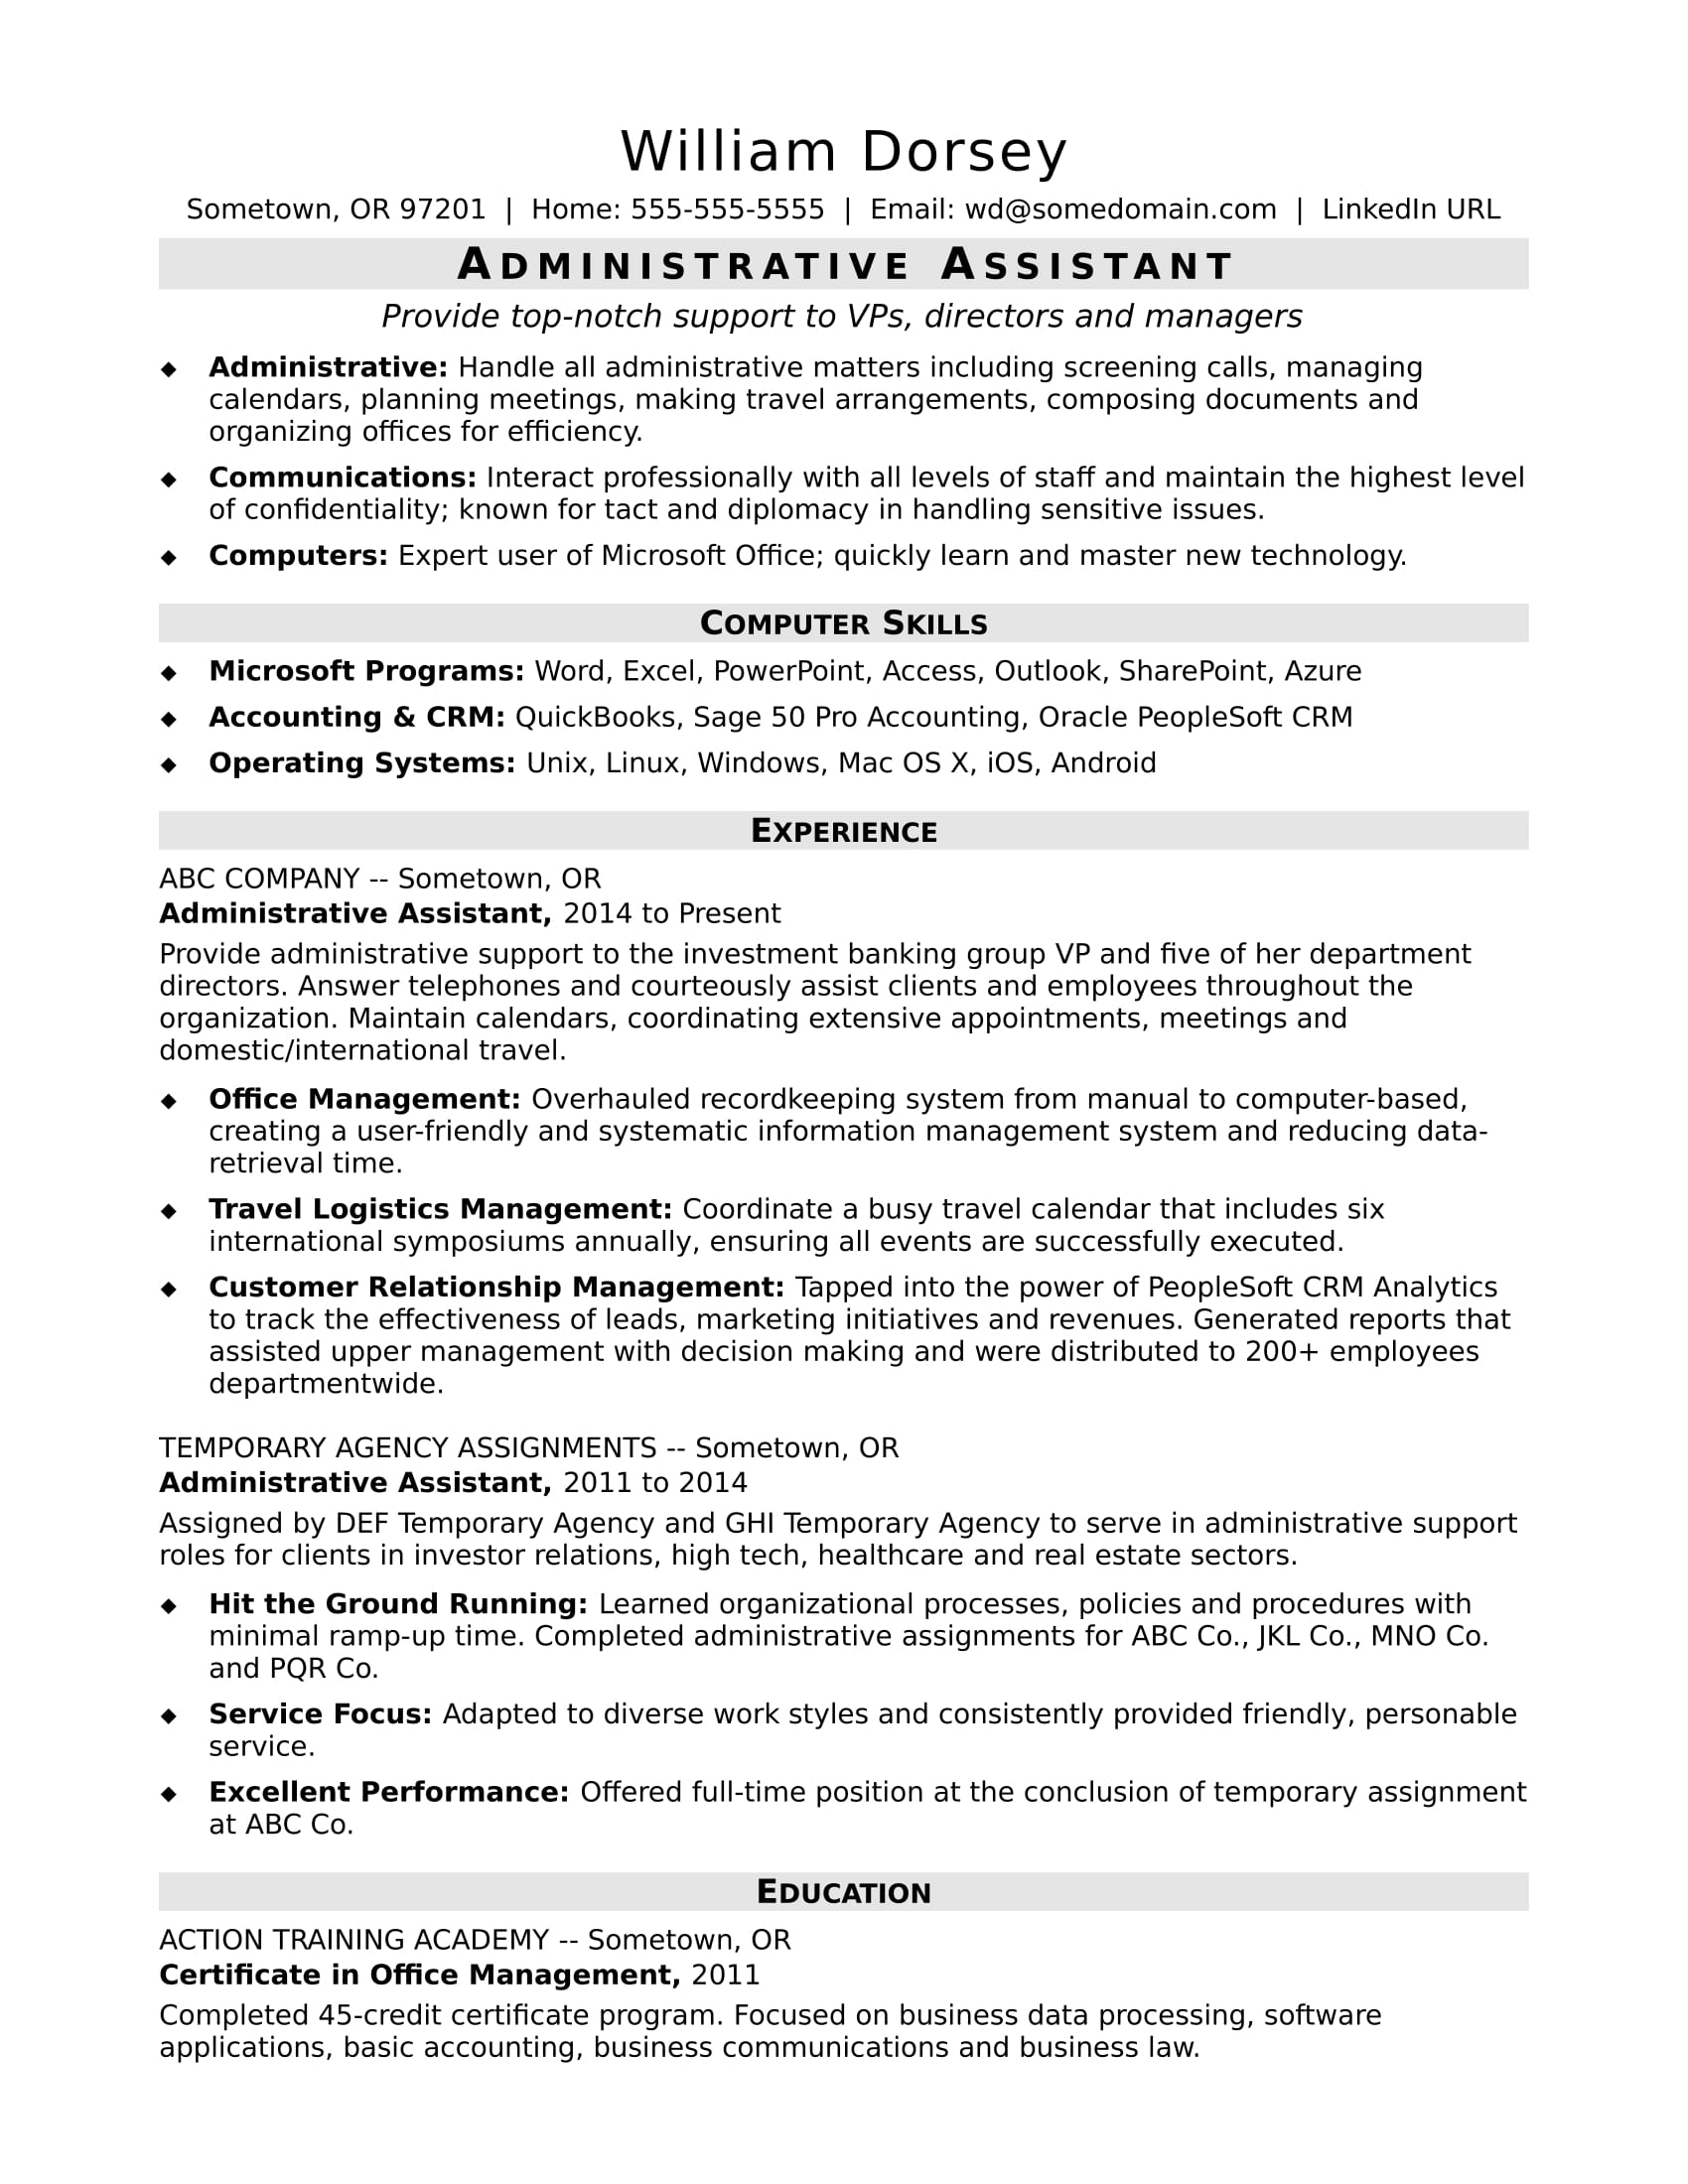 Sample Resume For A Midlevel Administrative Assistant  Vp Resume